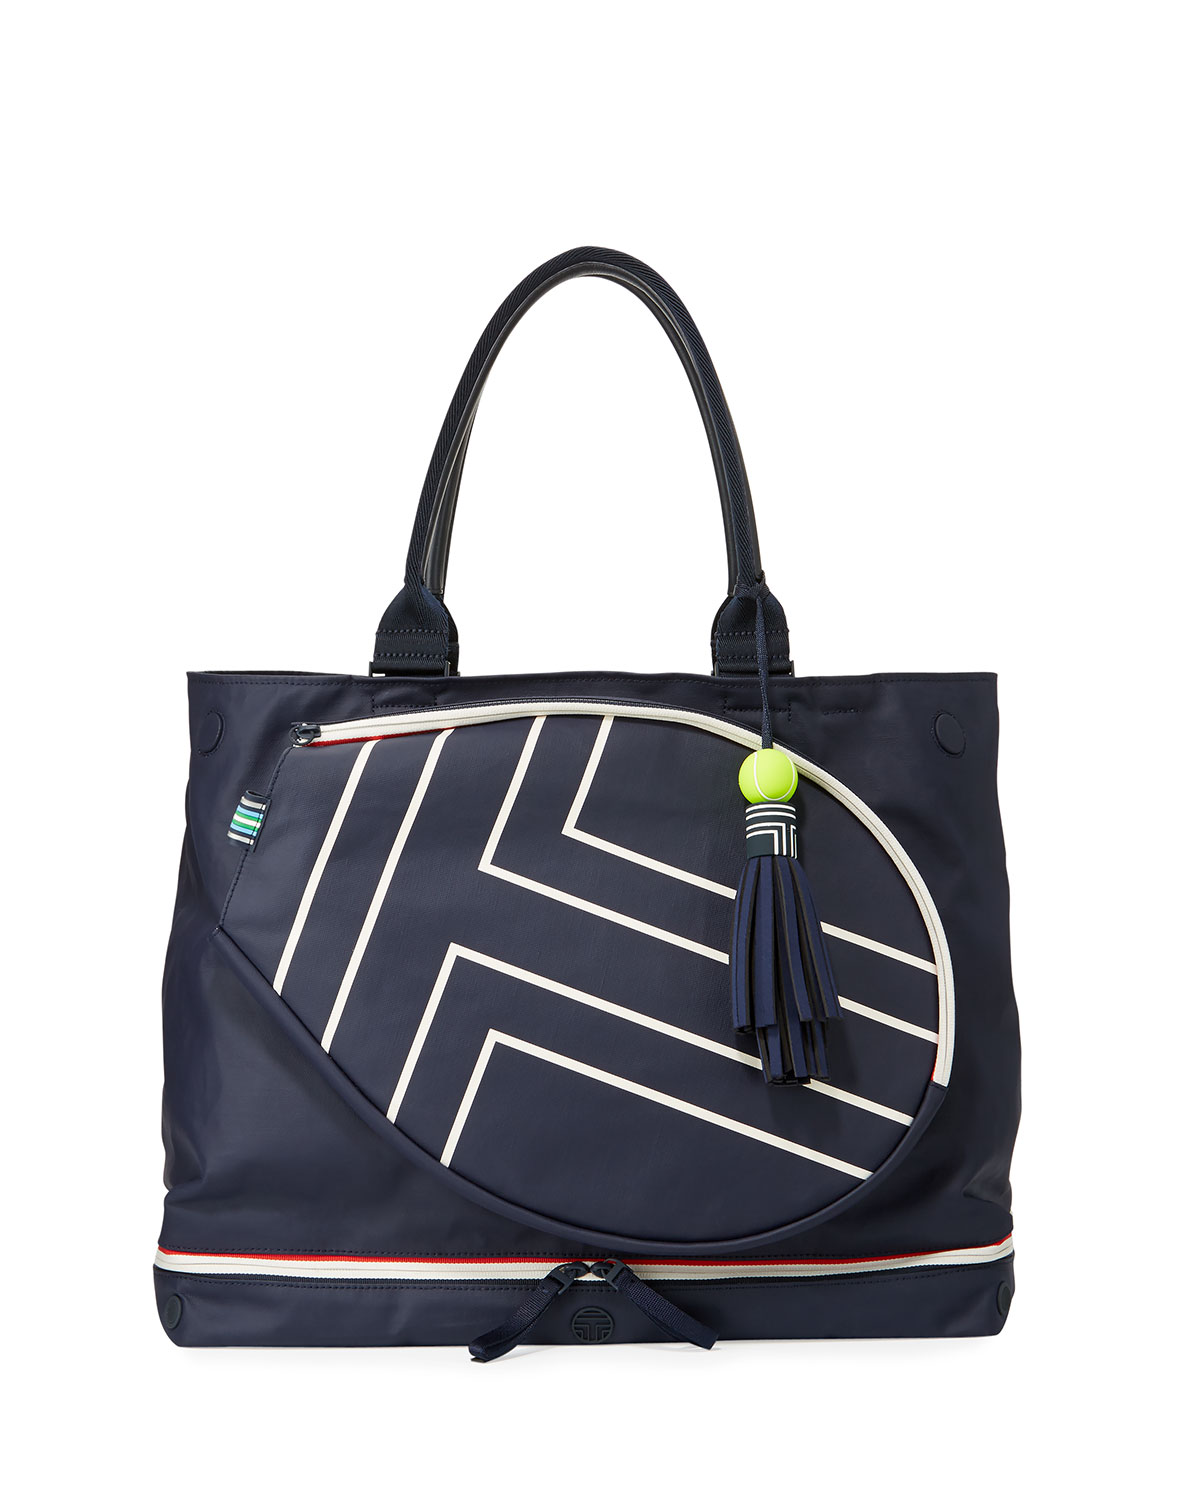 84a411738a10 Tory Sport Tennis Coated Racket Tote Bag